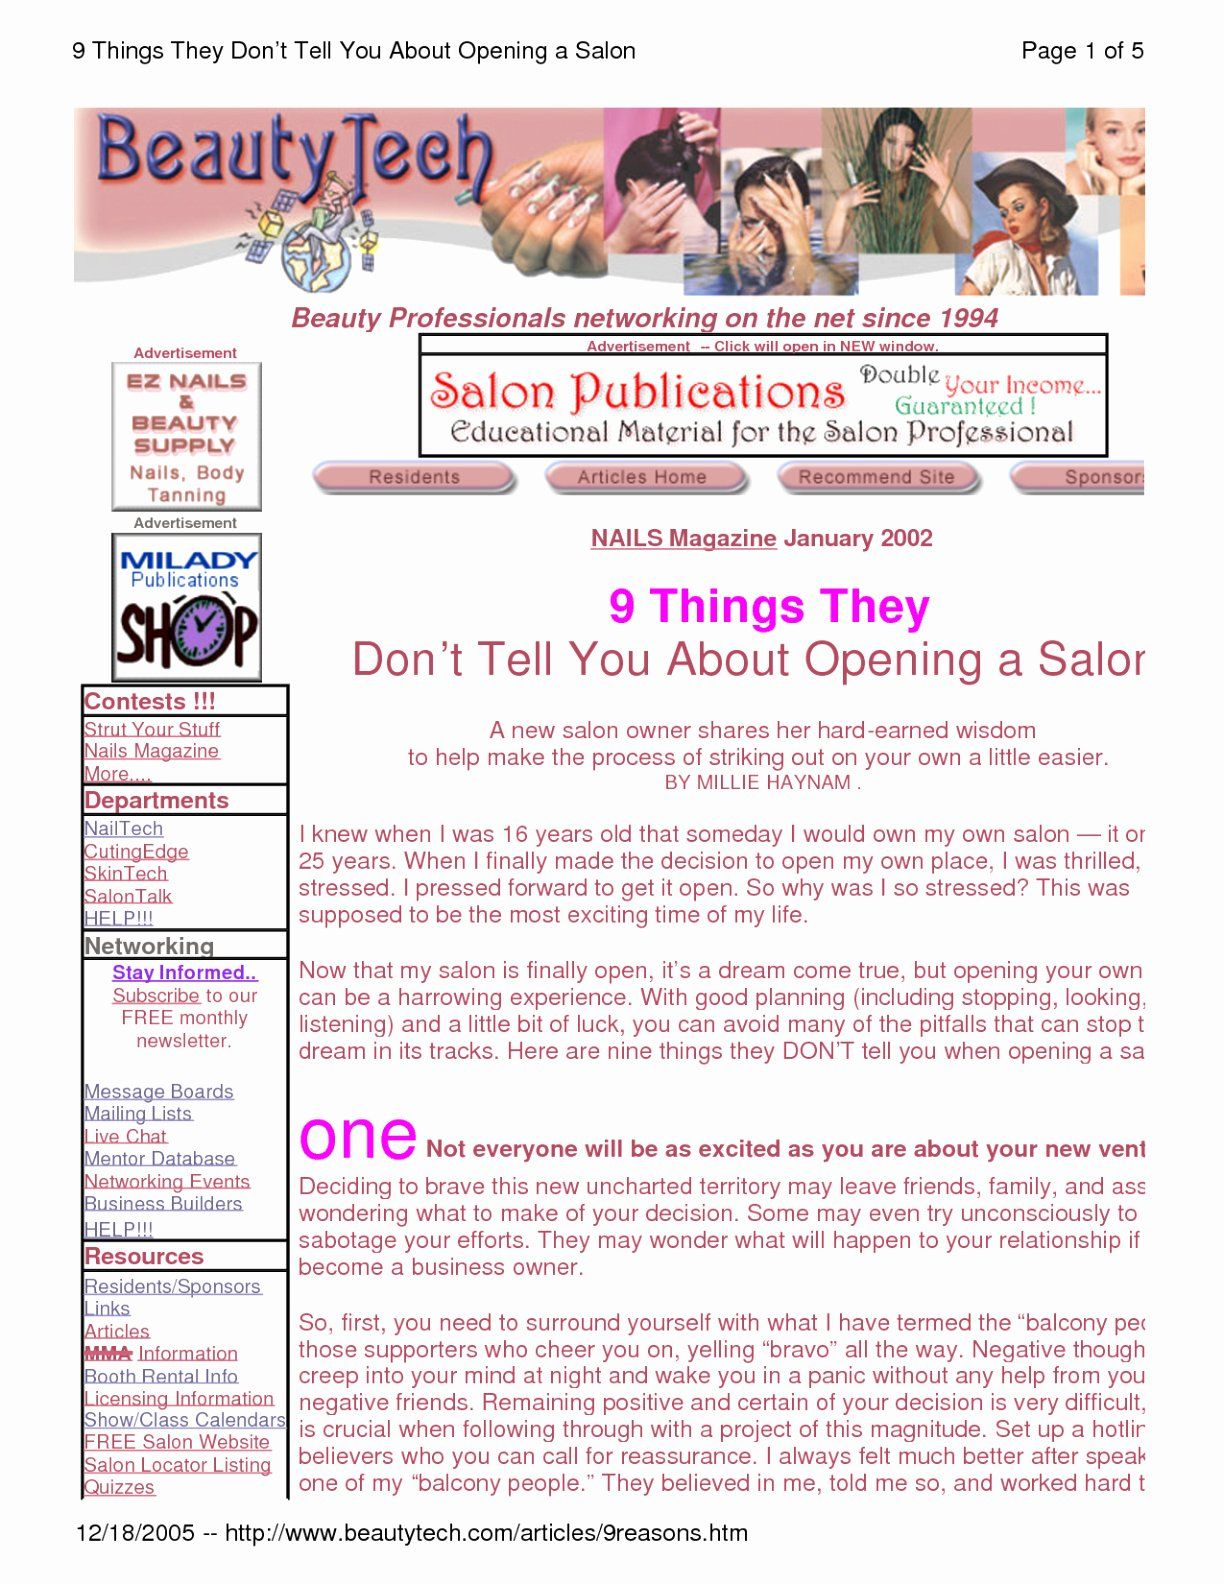 Salon Business Plan Template Free Awesome Free Tanning Salon Business Plan Template In 2020 Salon Business Plan Business Plan Template Free Business Plan Template